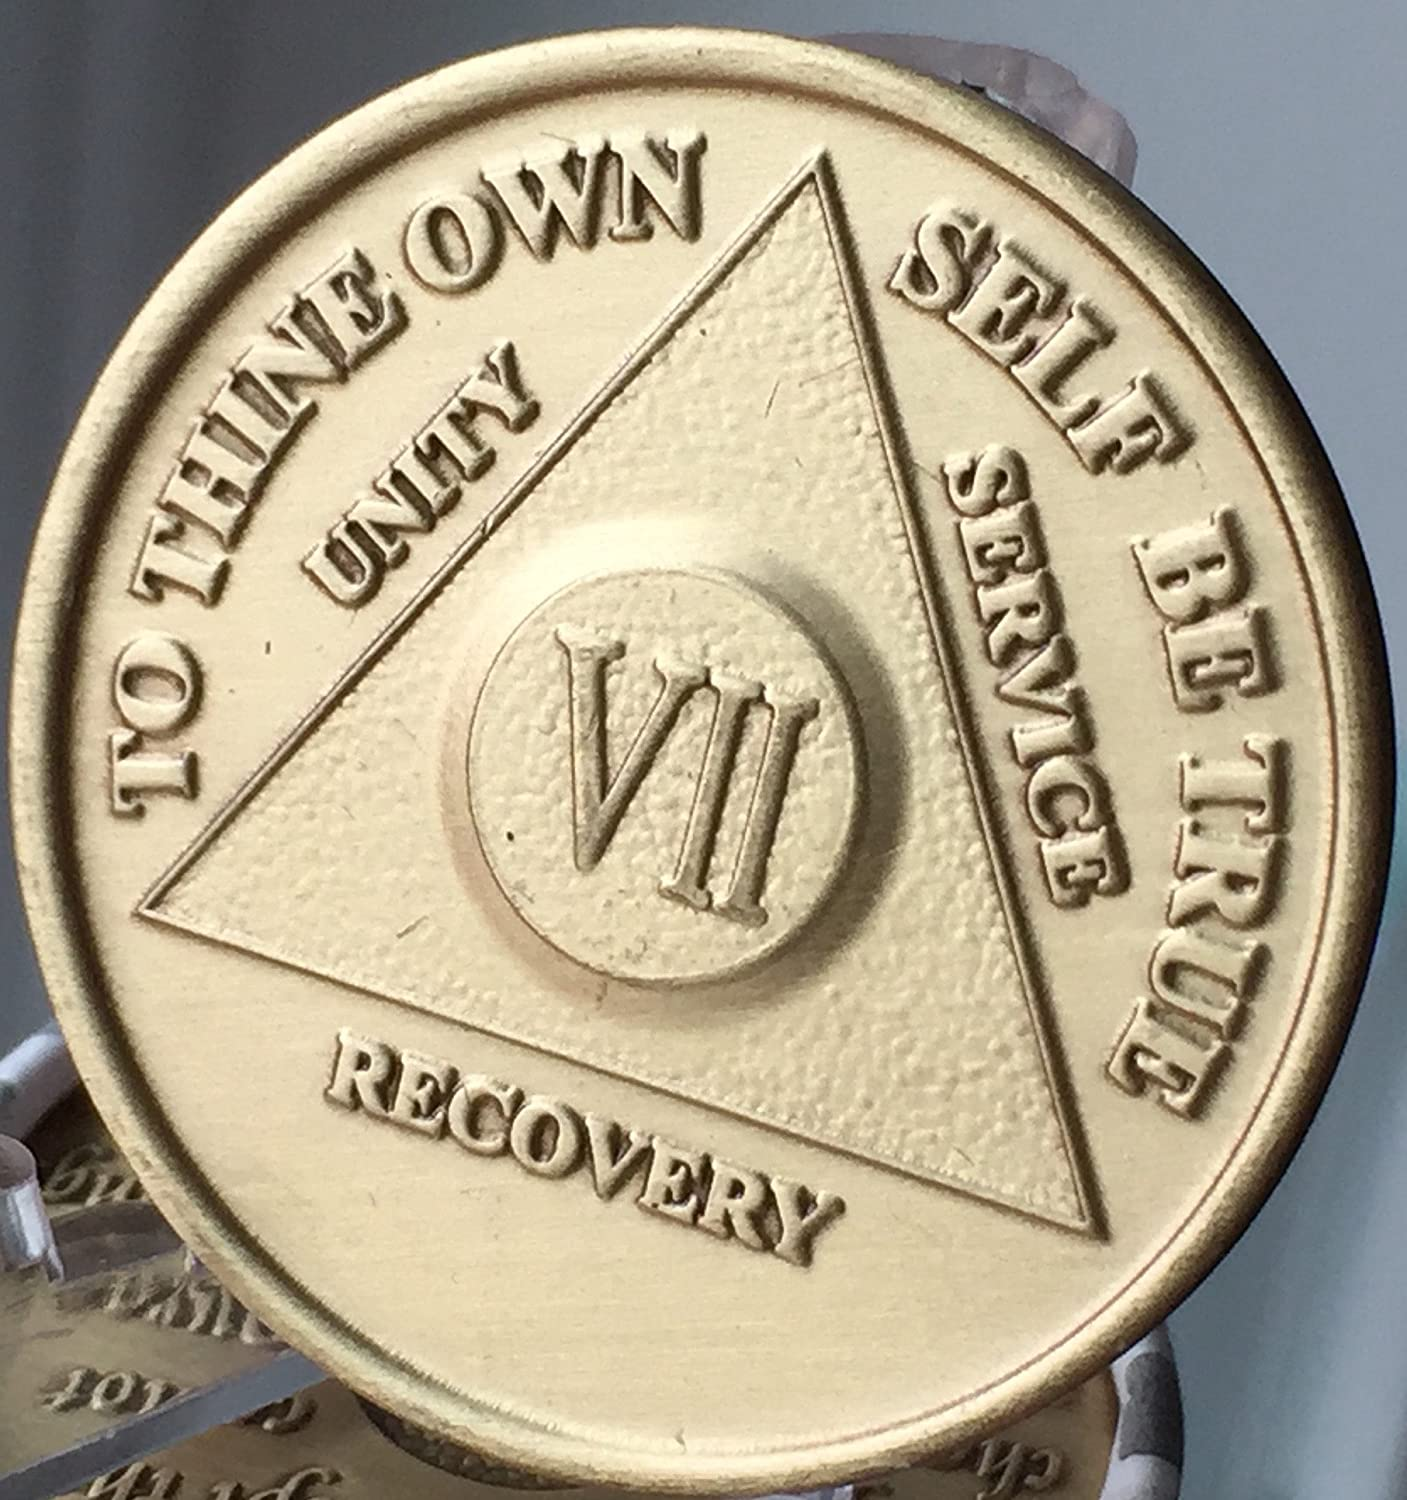 aa alcoholics anonymous bronze 59 year recovery sobriety coin medallion